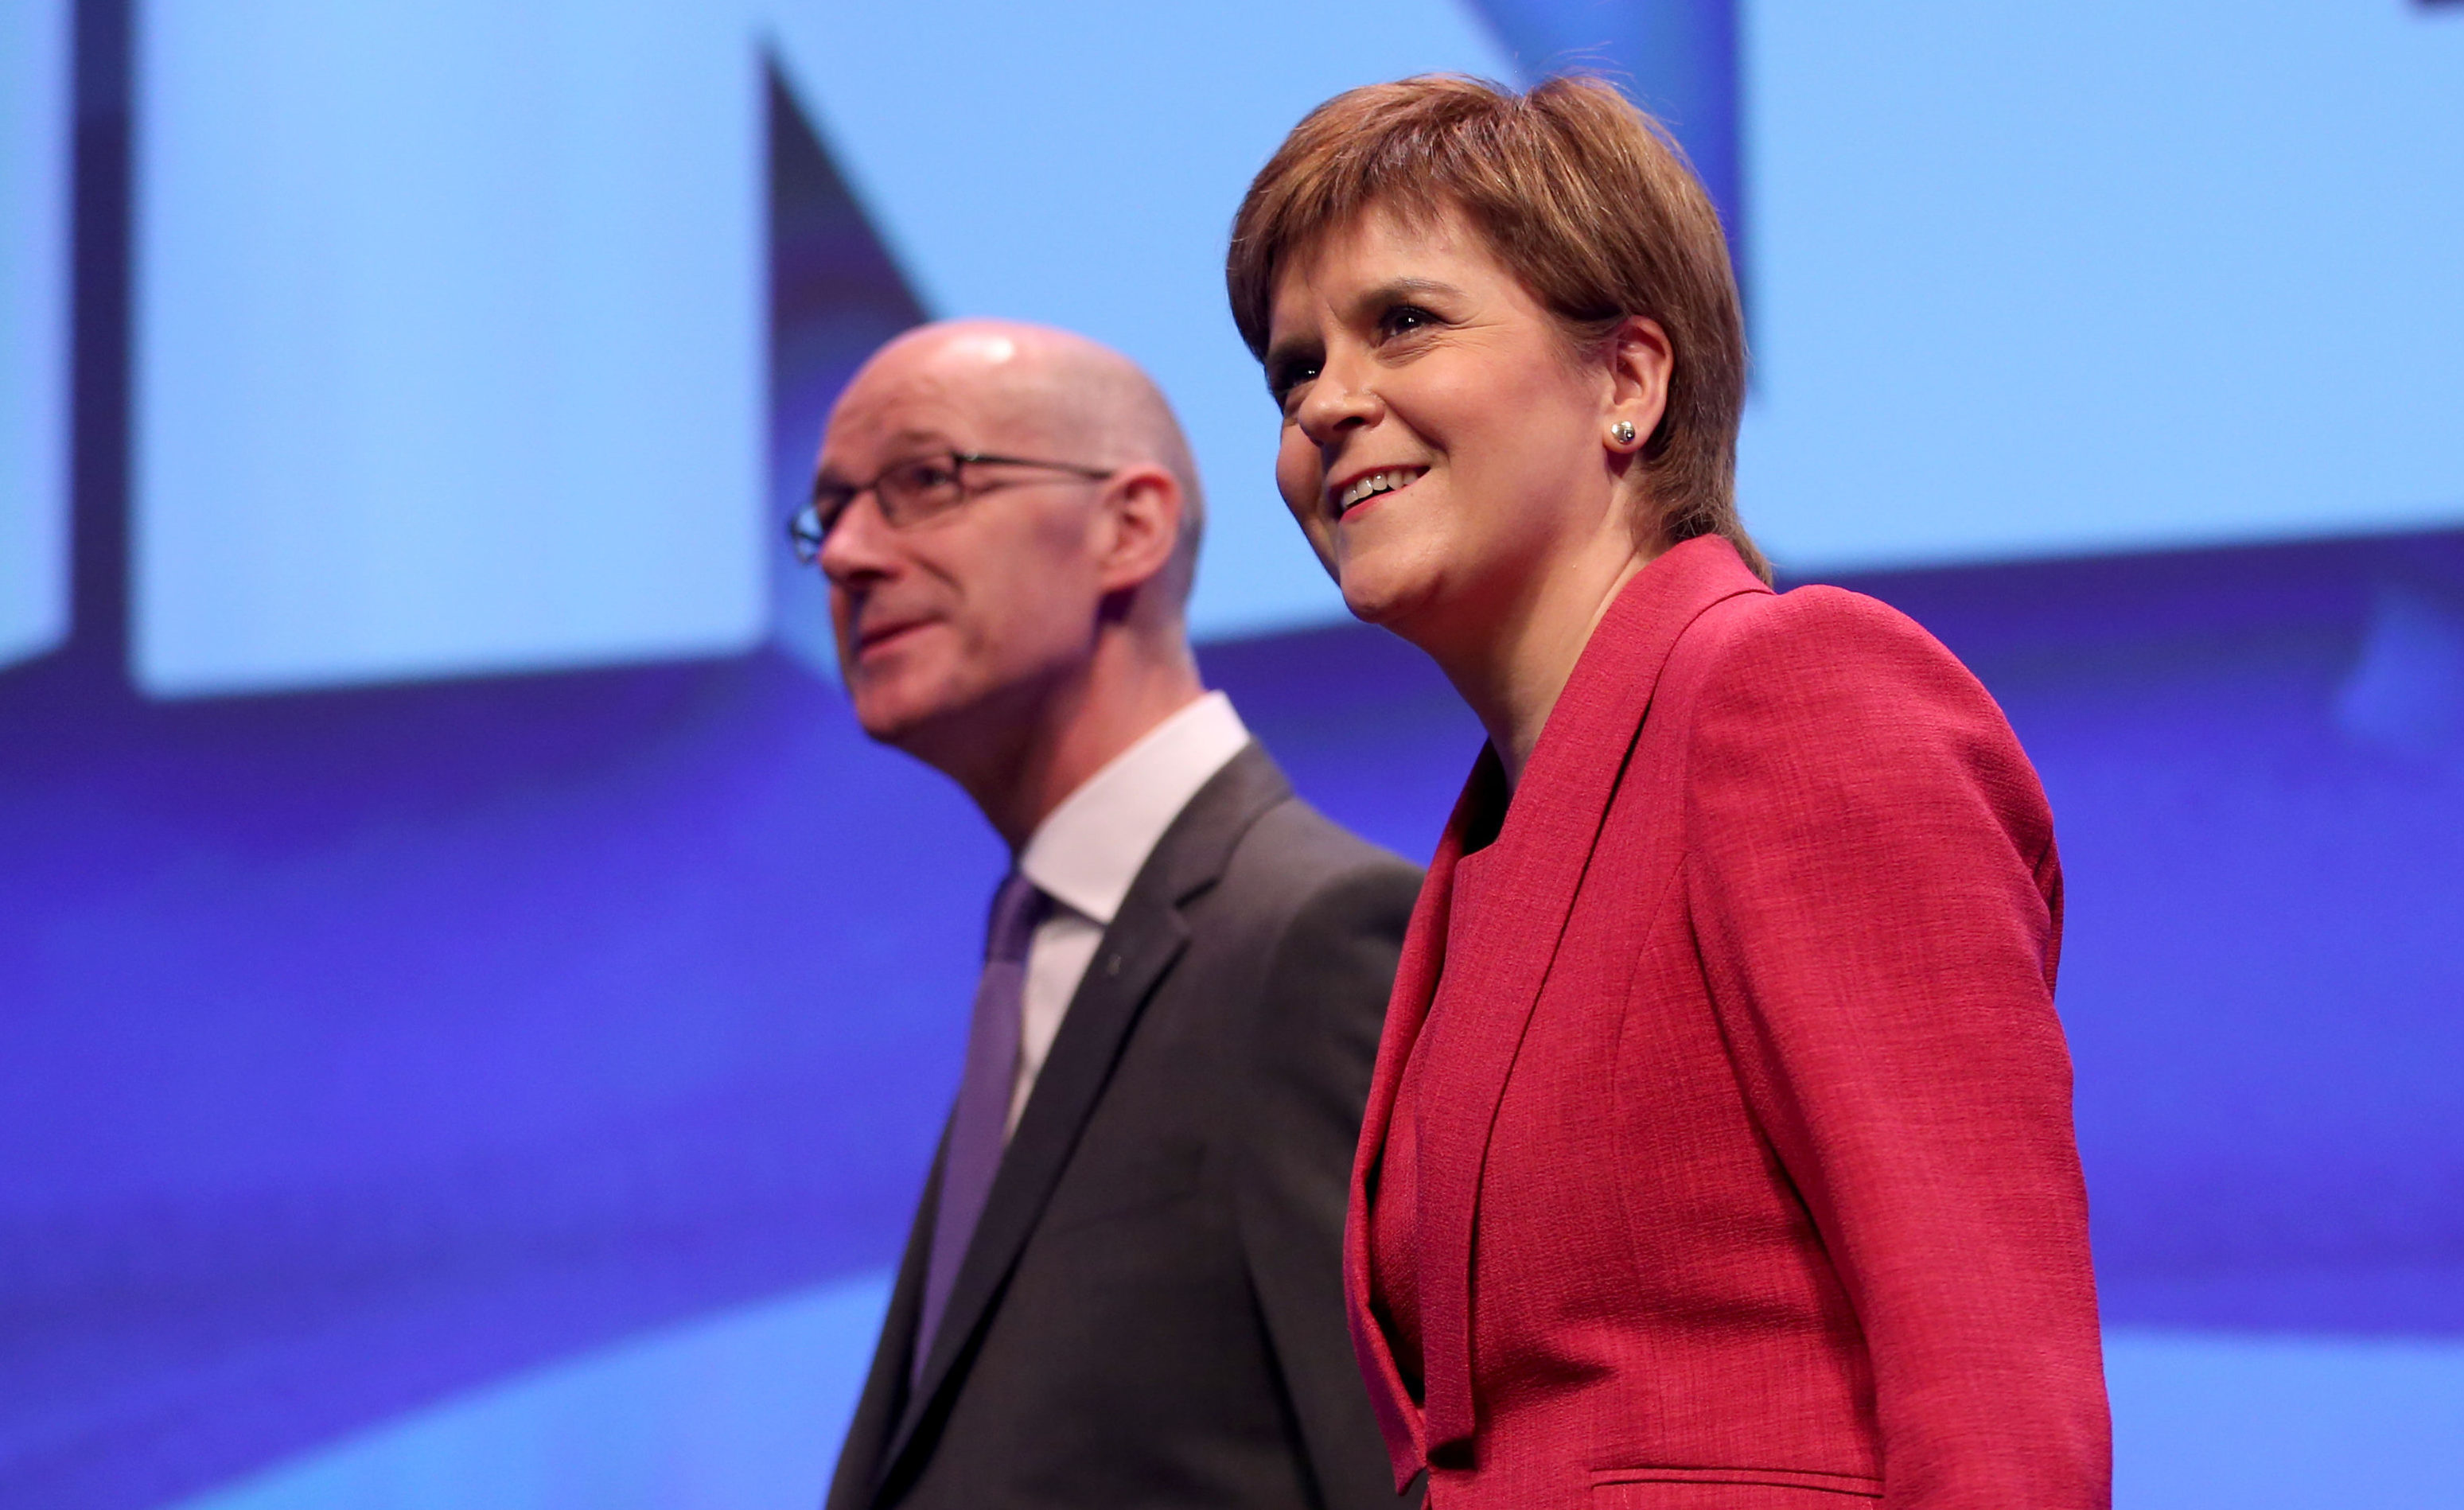 First Minister Nicola Sturgeon and Deputy First Minister John Swinney at the last SNP conference (Jane Barlow/PA Wire)